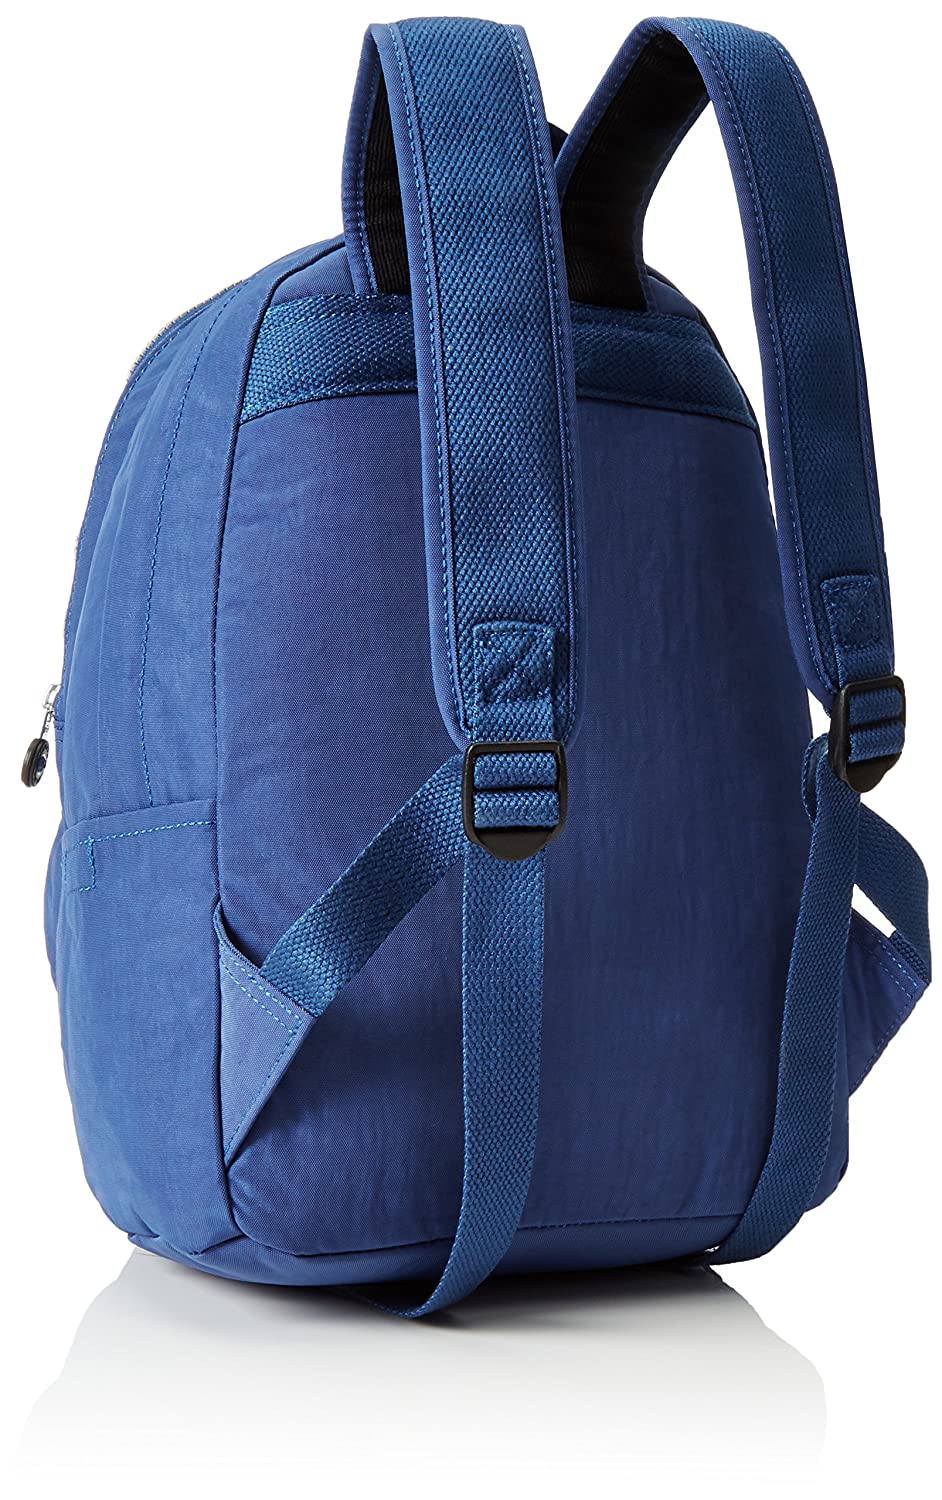 2d44a1454d Kipling Women s CLAS Challenger Backpack Handbags